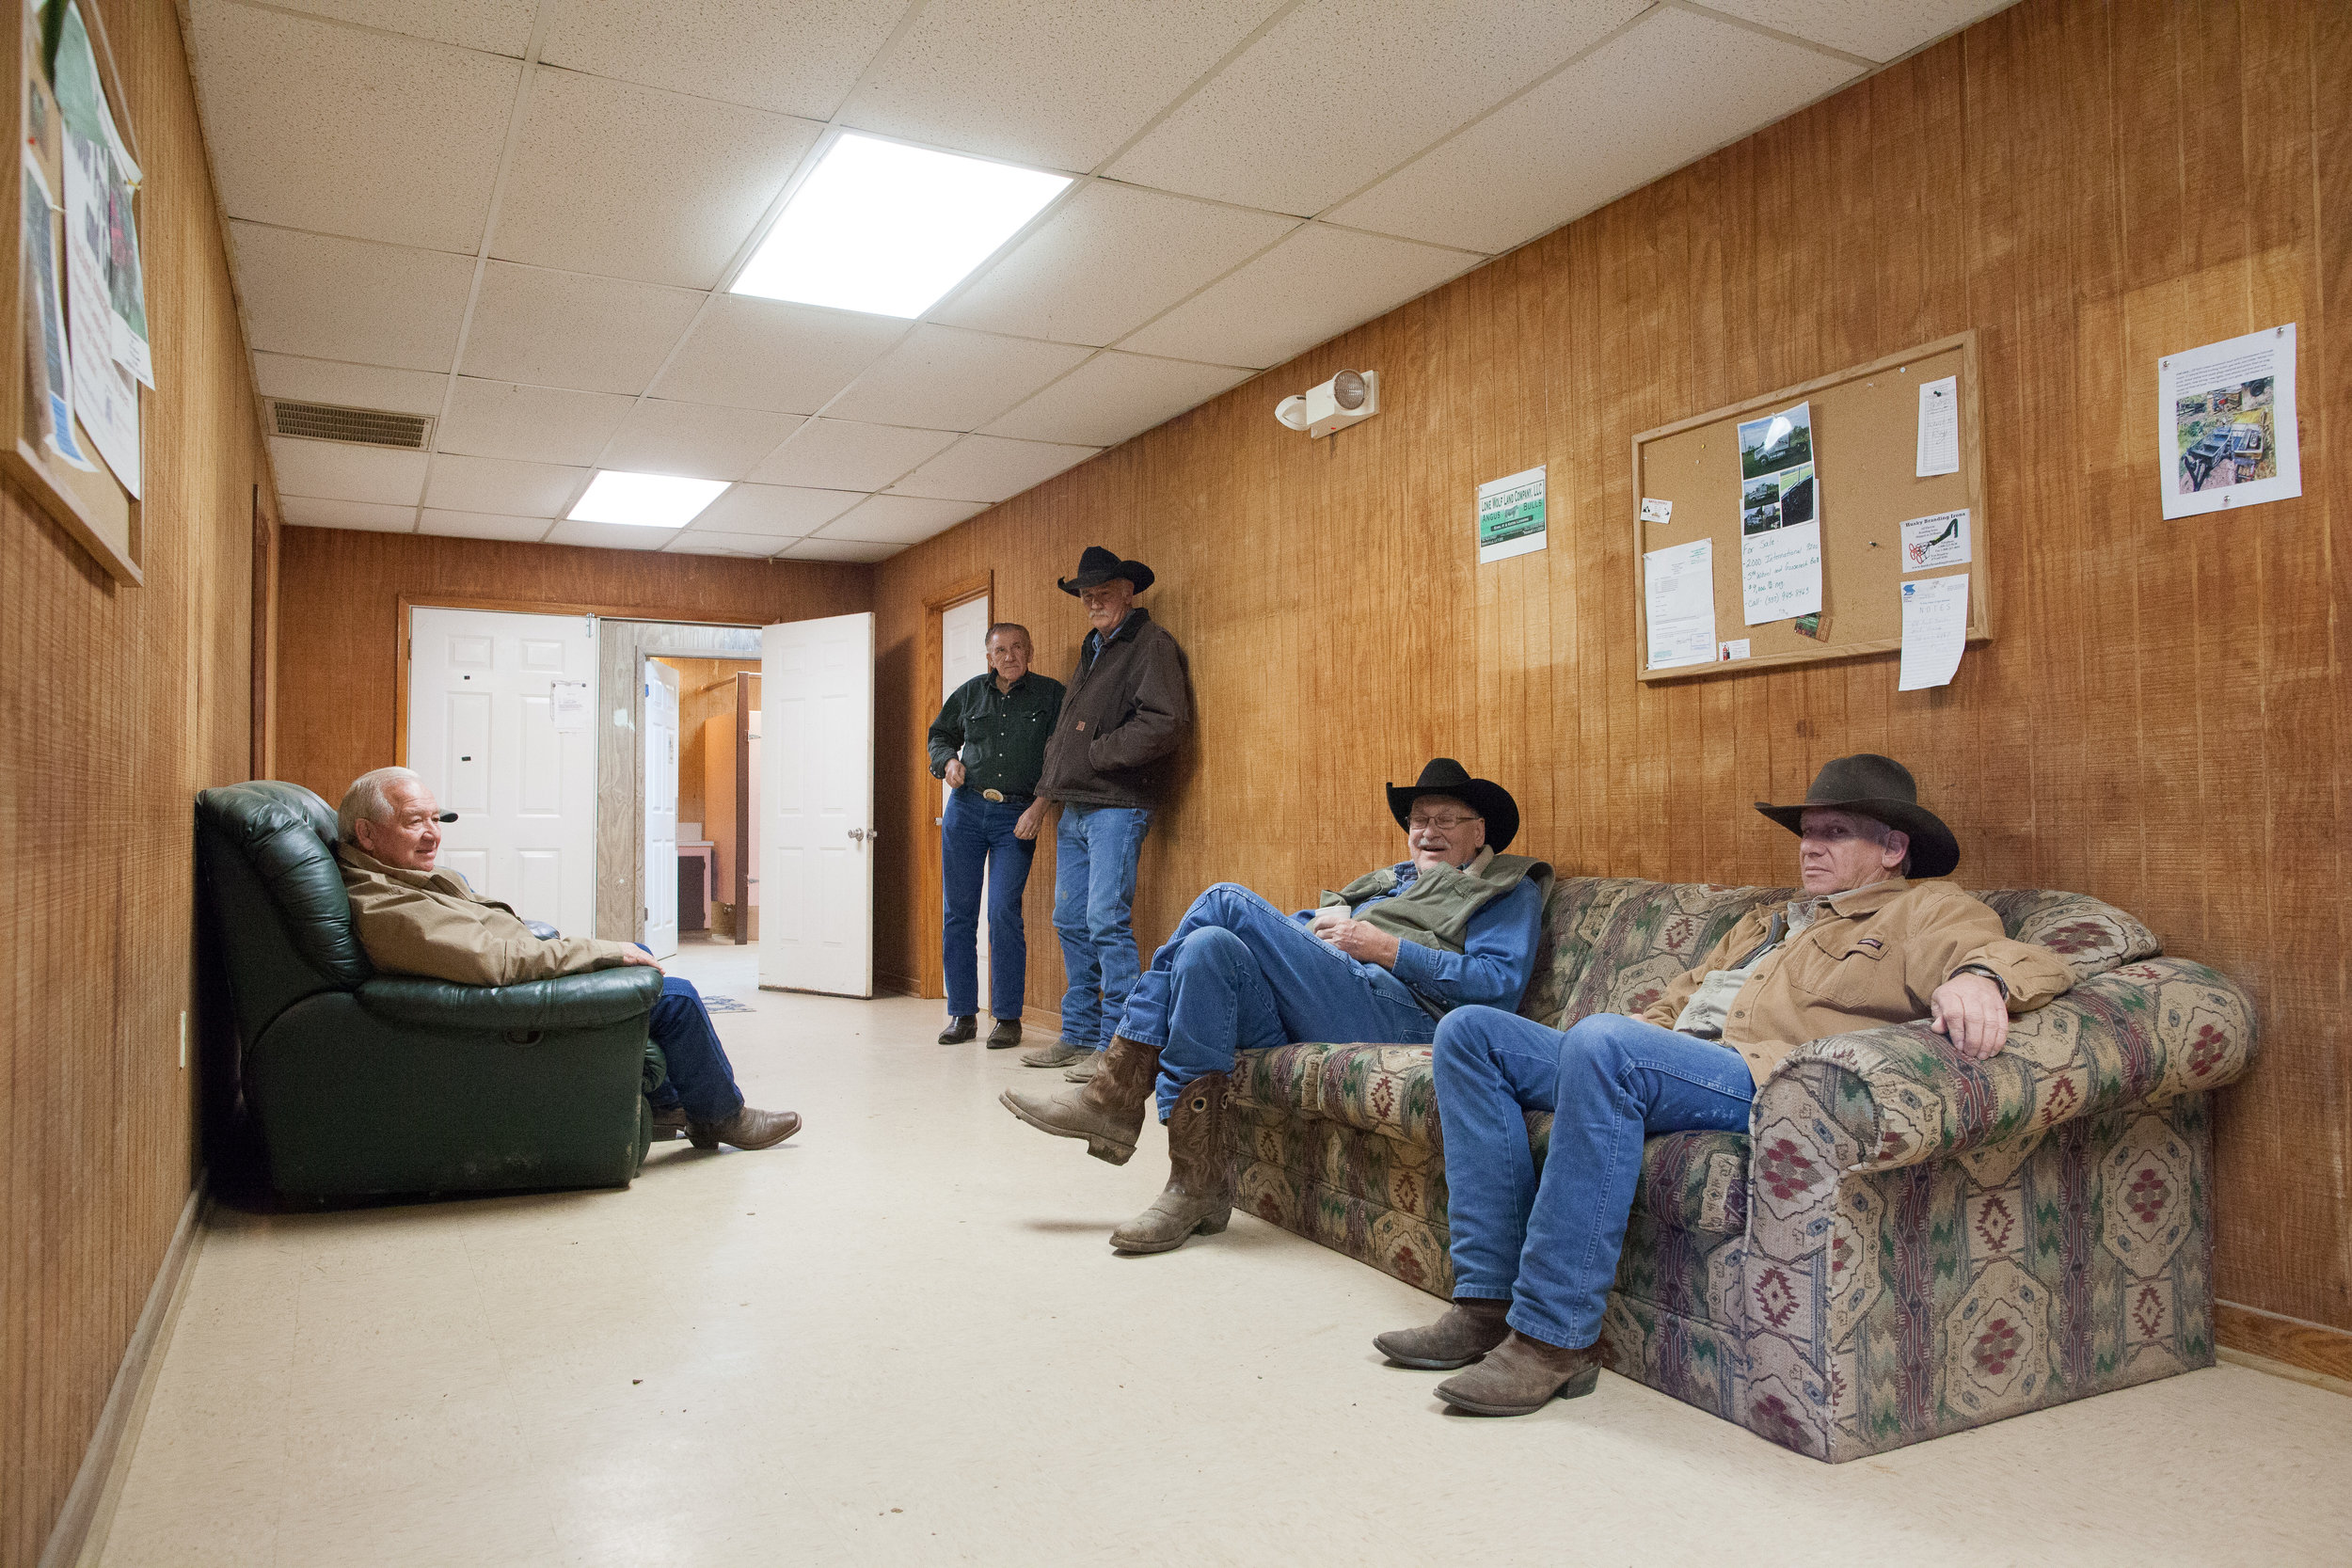 Waiting Room at the Mansura Livestock Auction, Mansura, LA